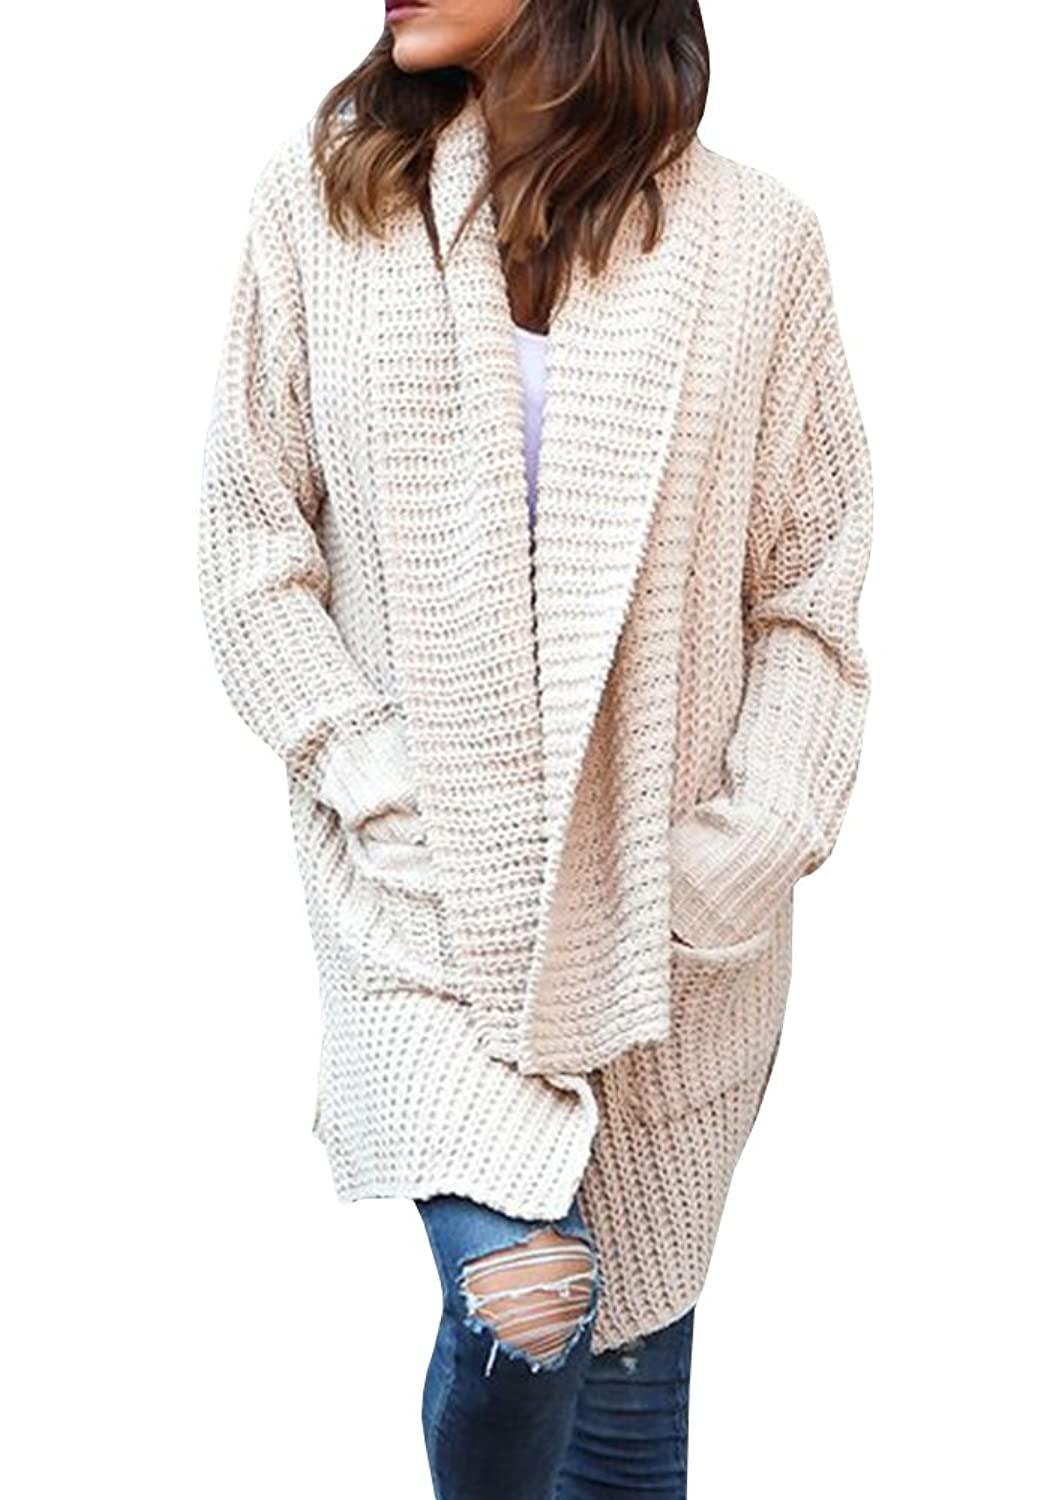 Amazon.com : Womens Long Sleeve Oversized Loose Knitted Sweater ...